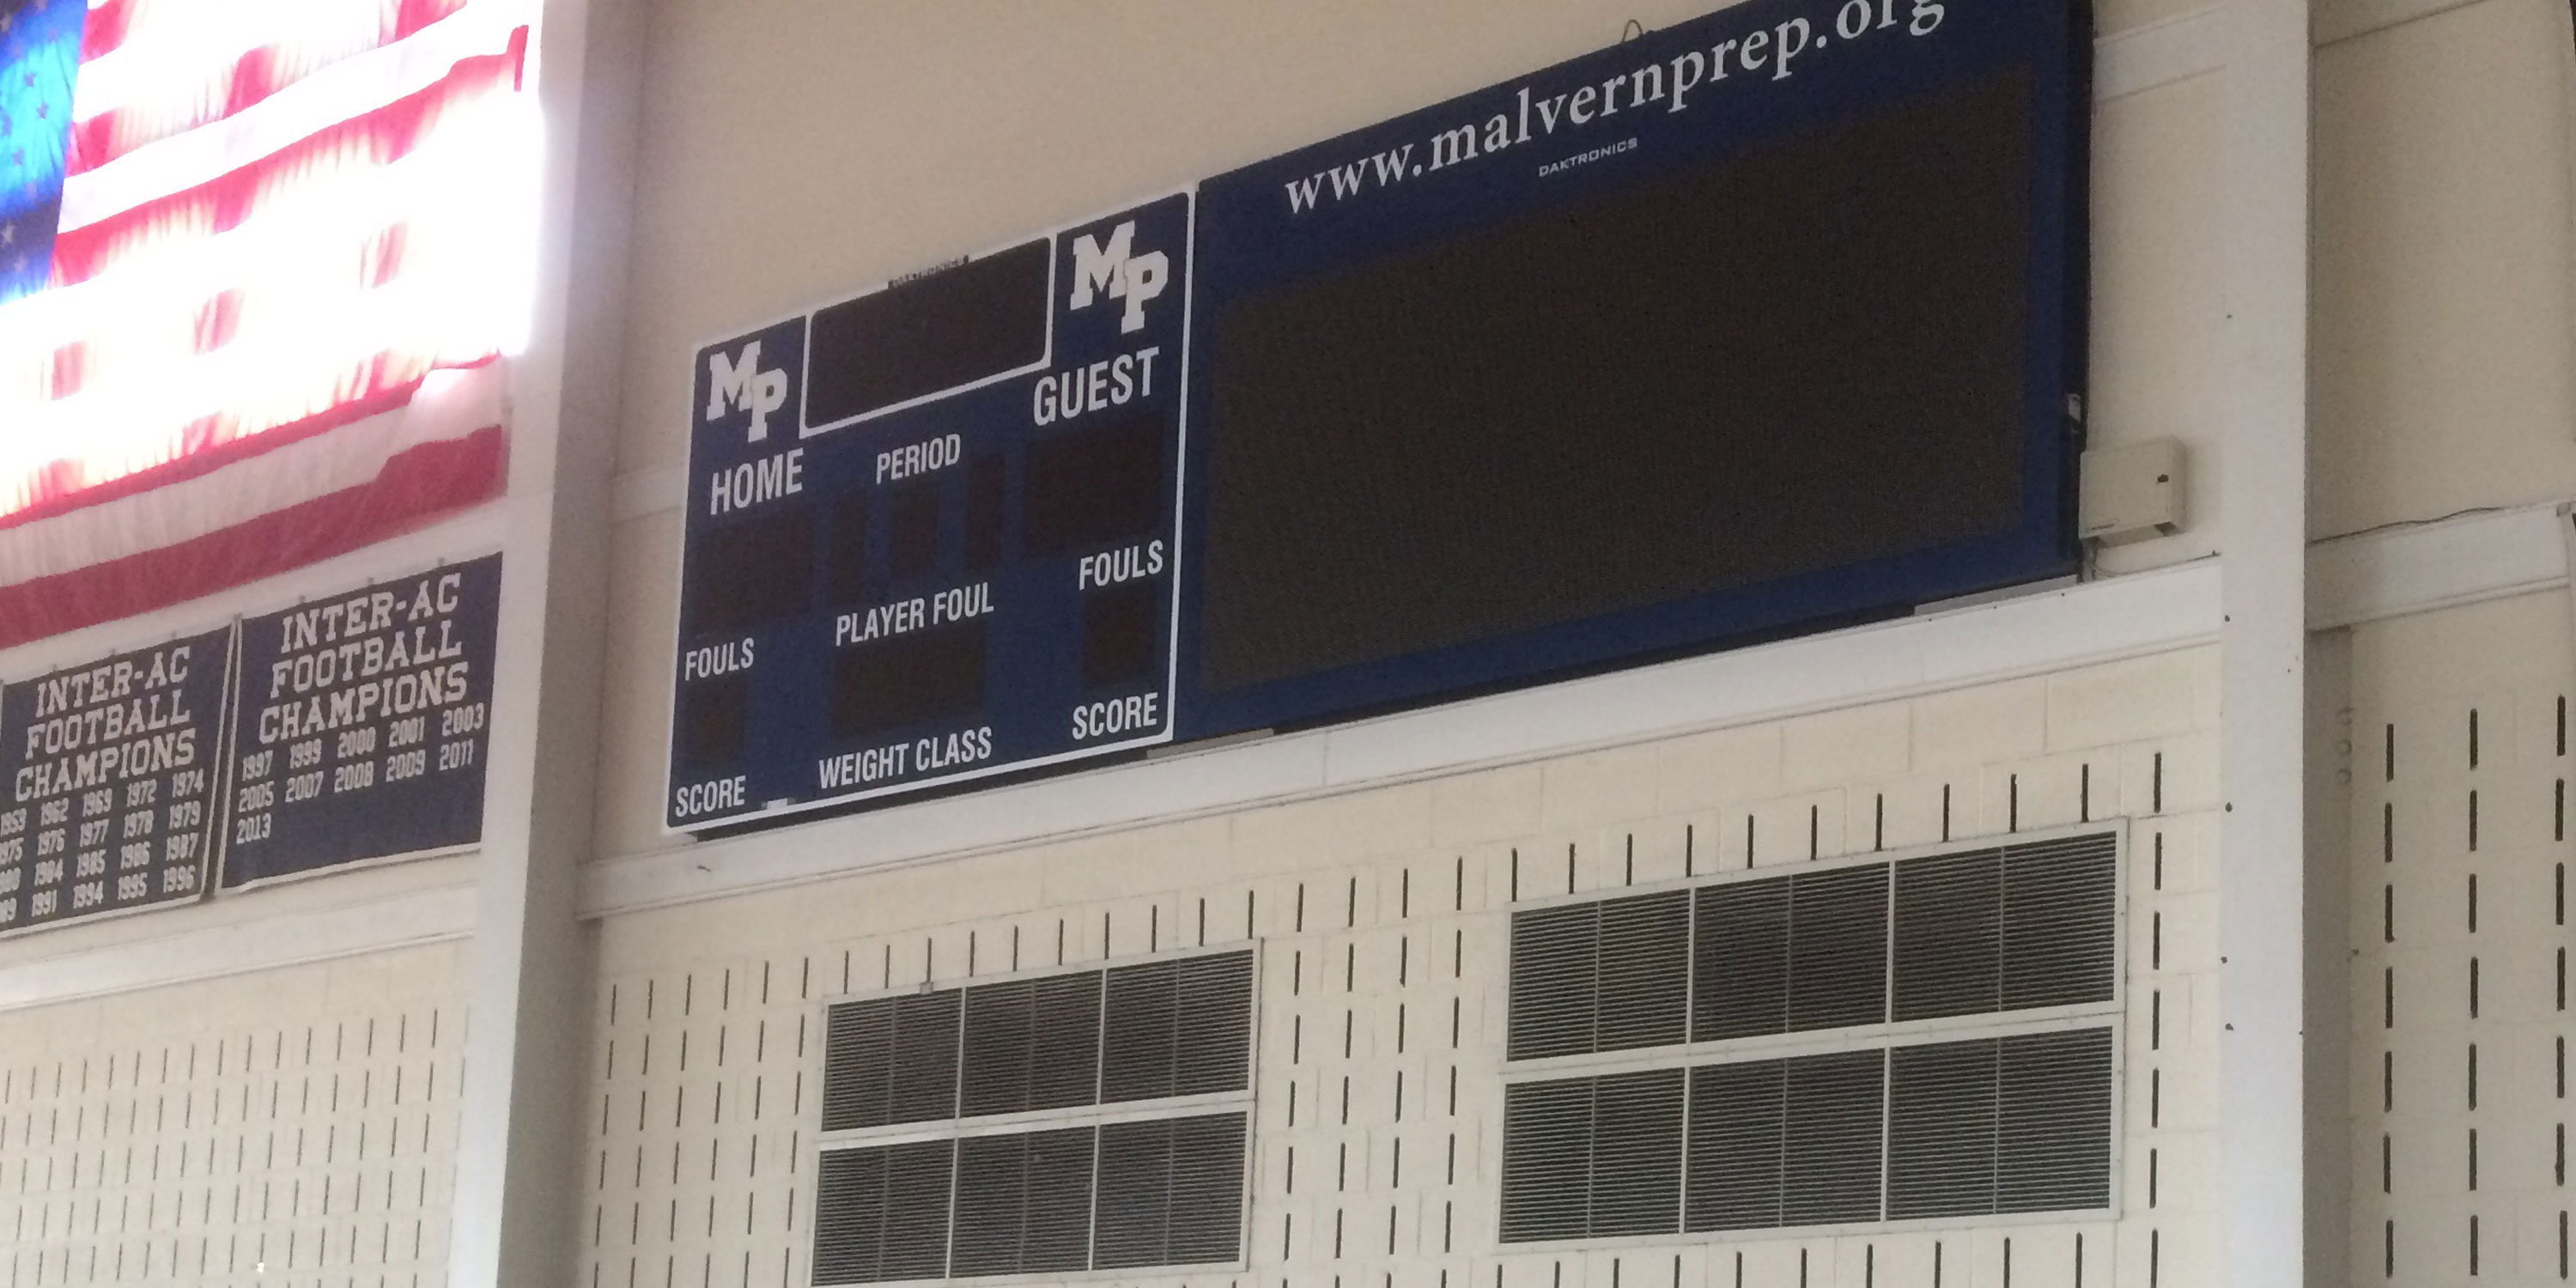 New scoreboard is game-changer for O'Neill